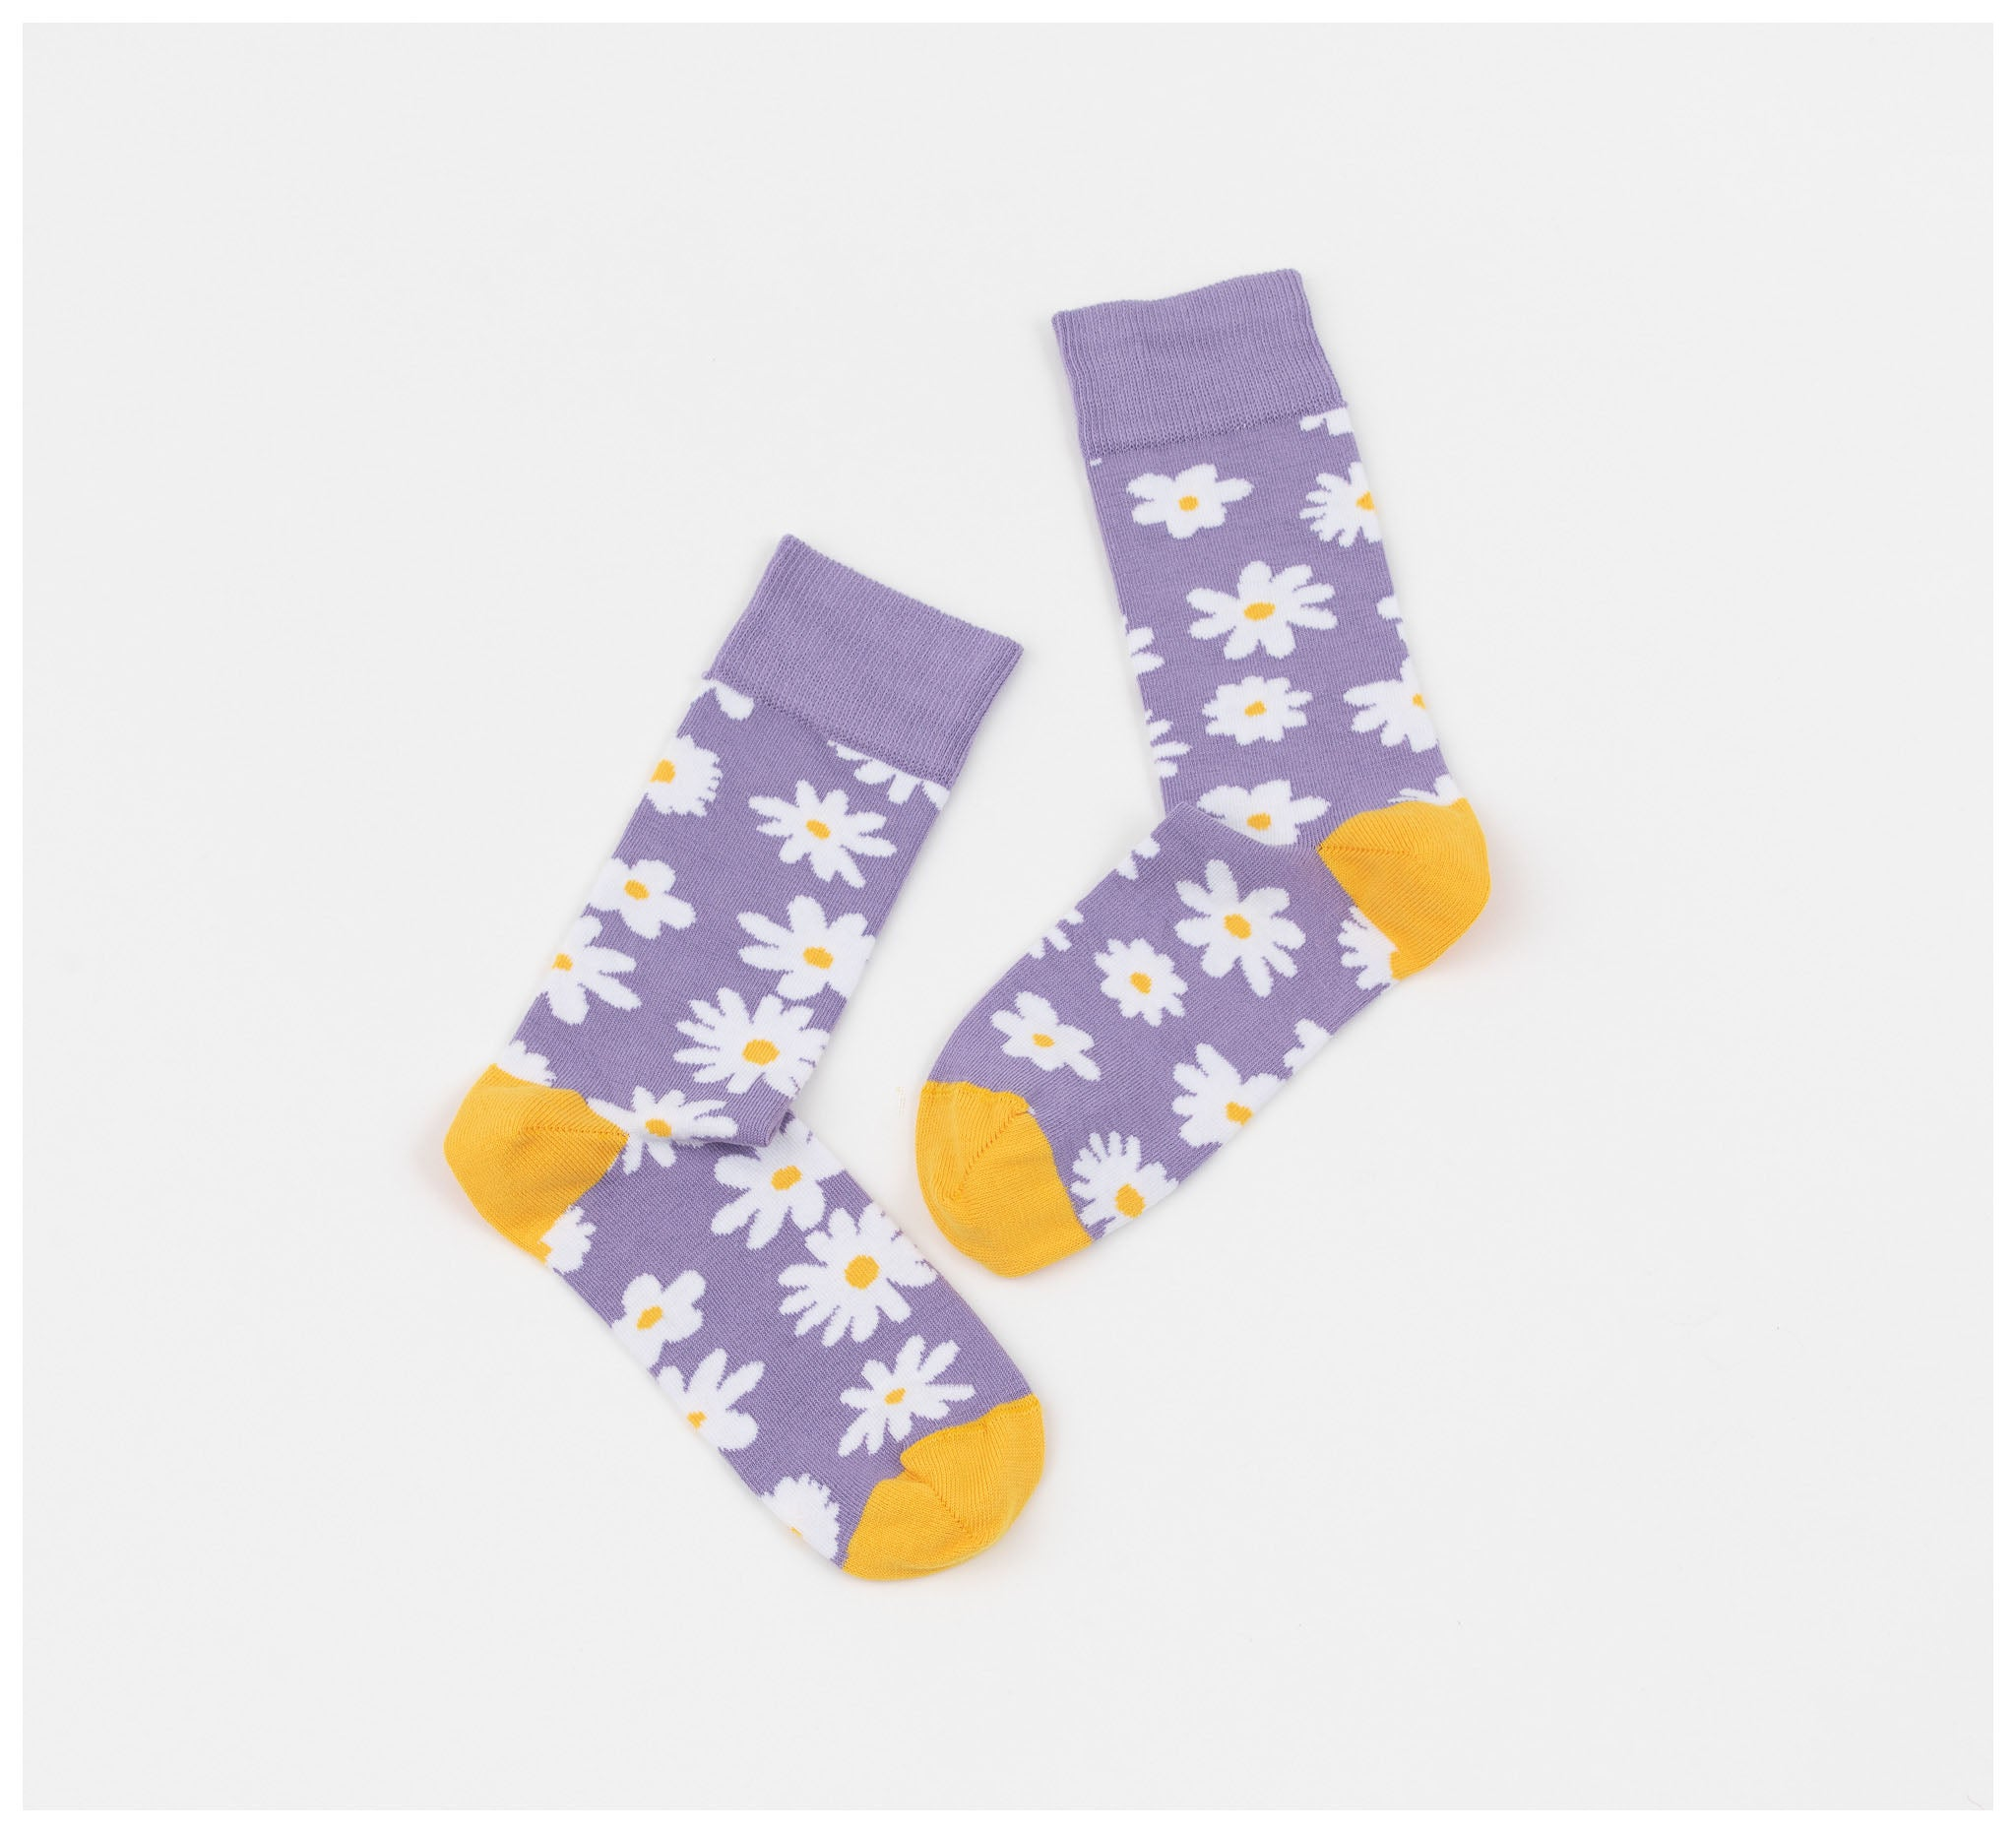 Emily Green Studio - Daisy Socks